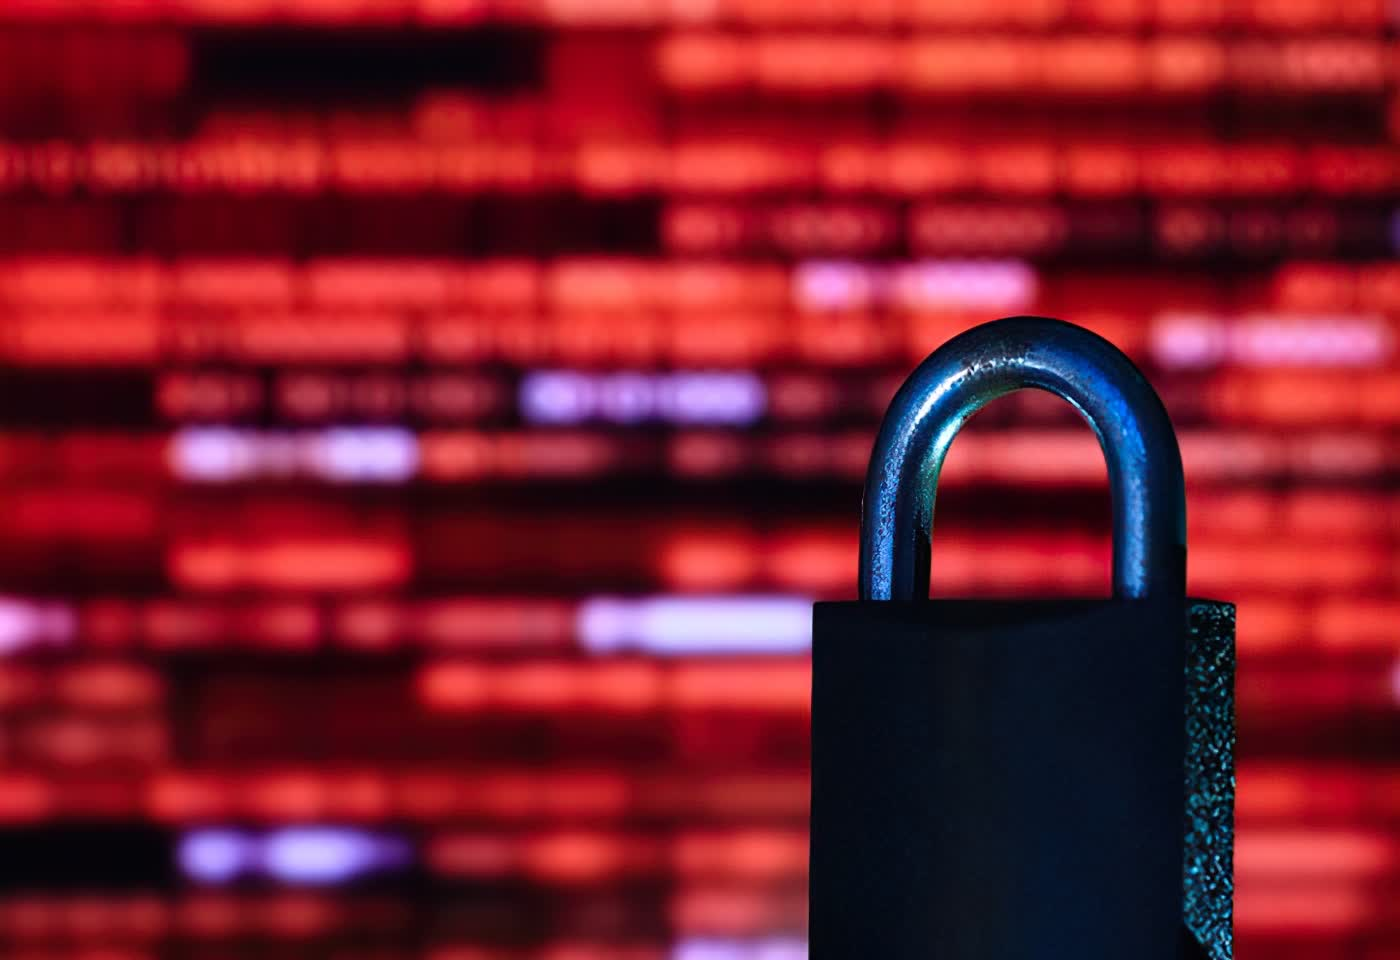 REvil alone accounts for a significant portion of Q2 2021 ransomware attacks